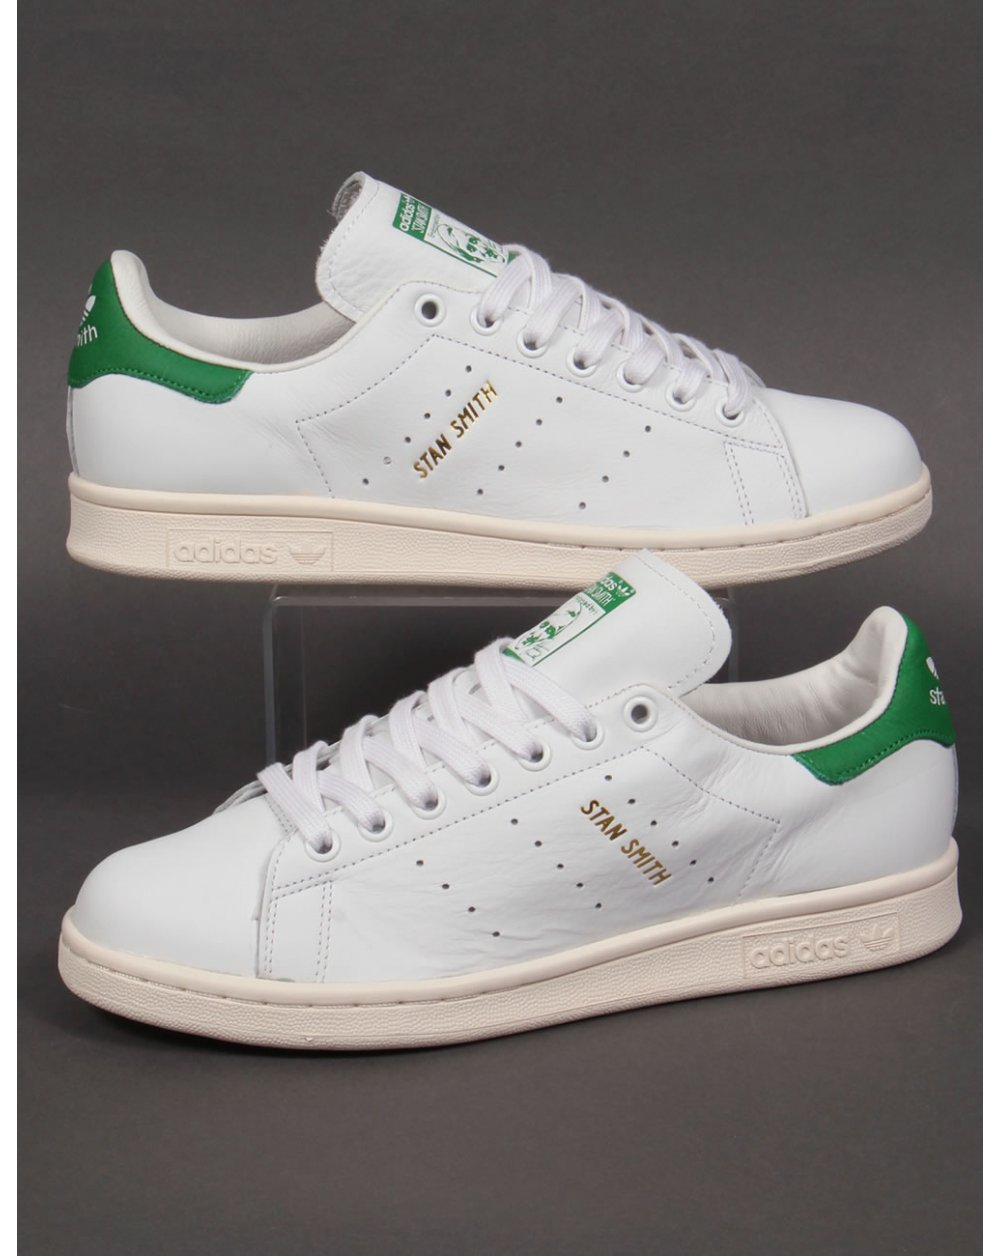 3ccc699f19d1ea Adidas Stan Smith Trainers White green gold,originals, mens, shoes,